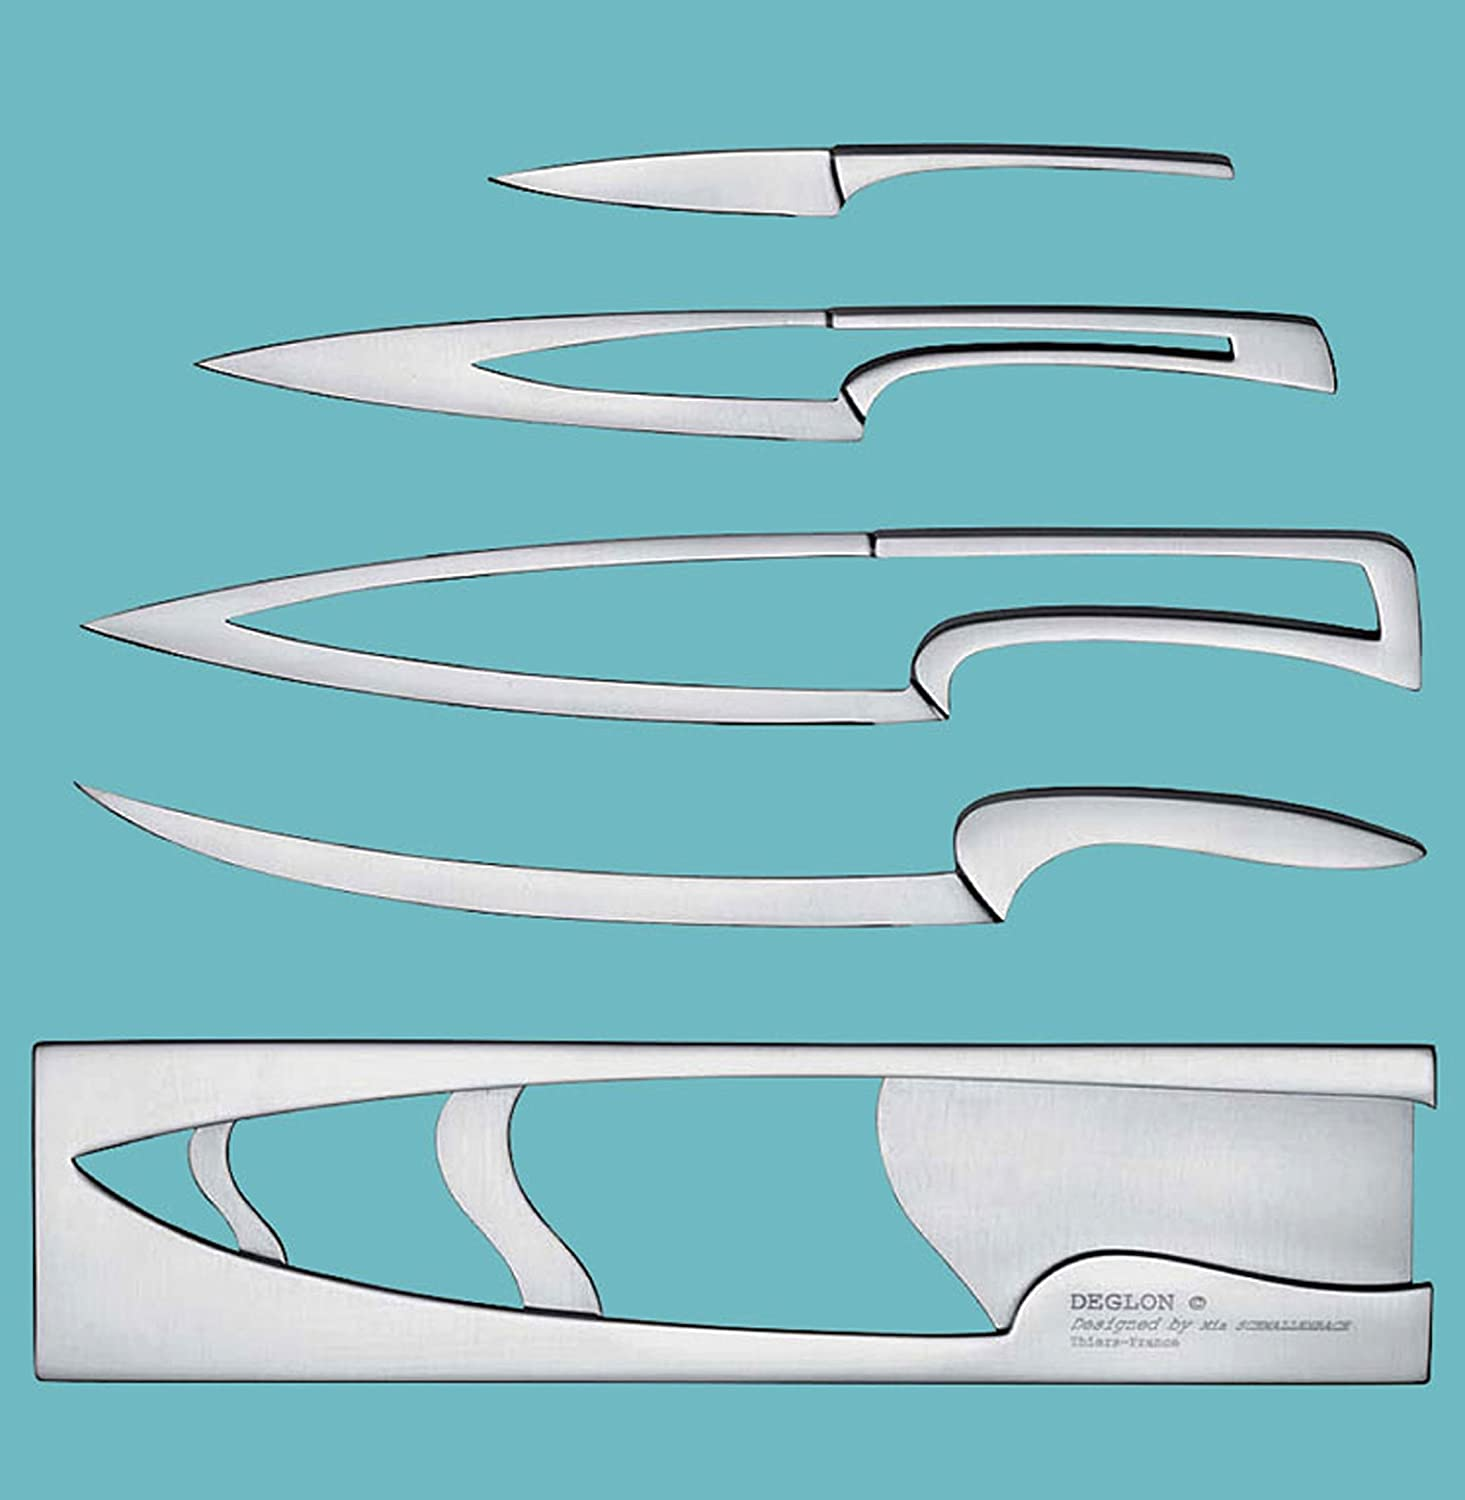 Amazon.com: Deglon Meeting Knife Set, Stainless Steel Knives and ...